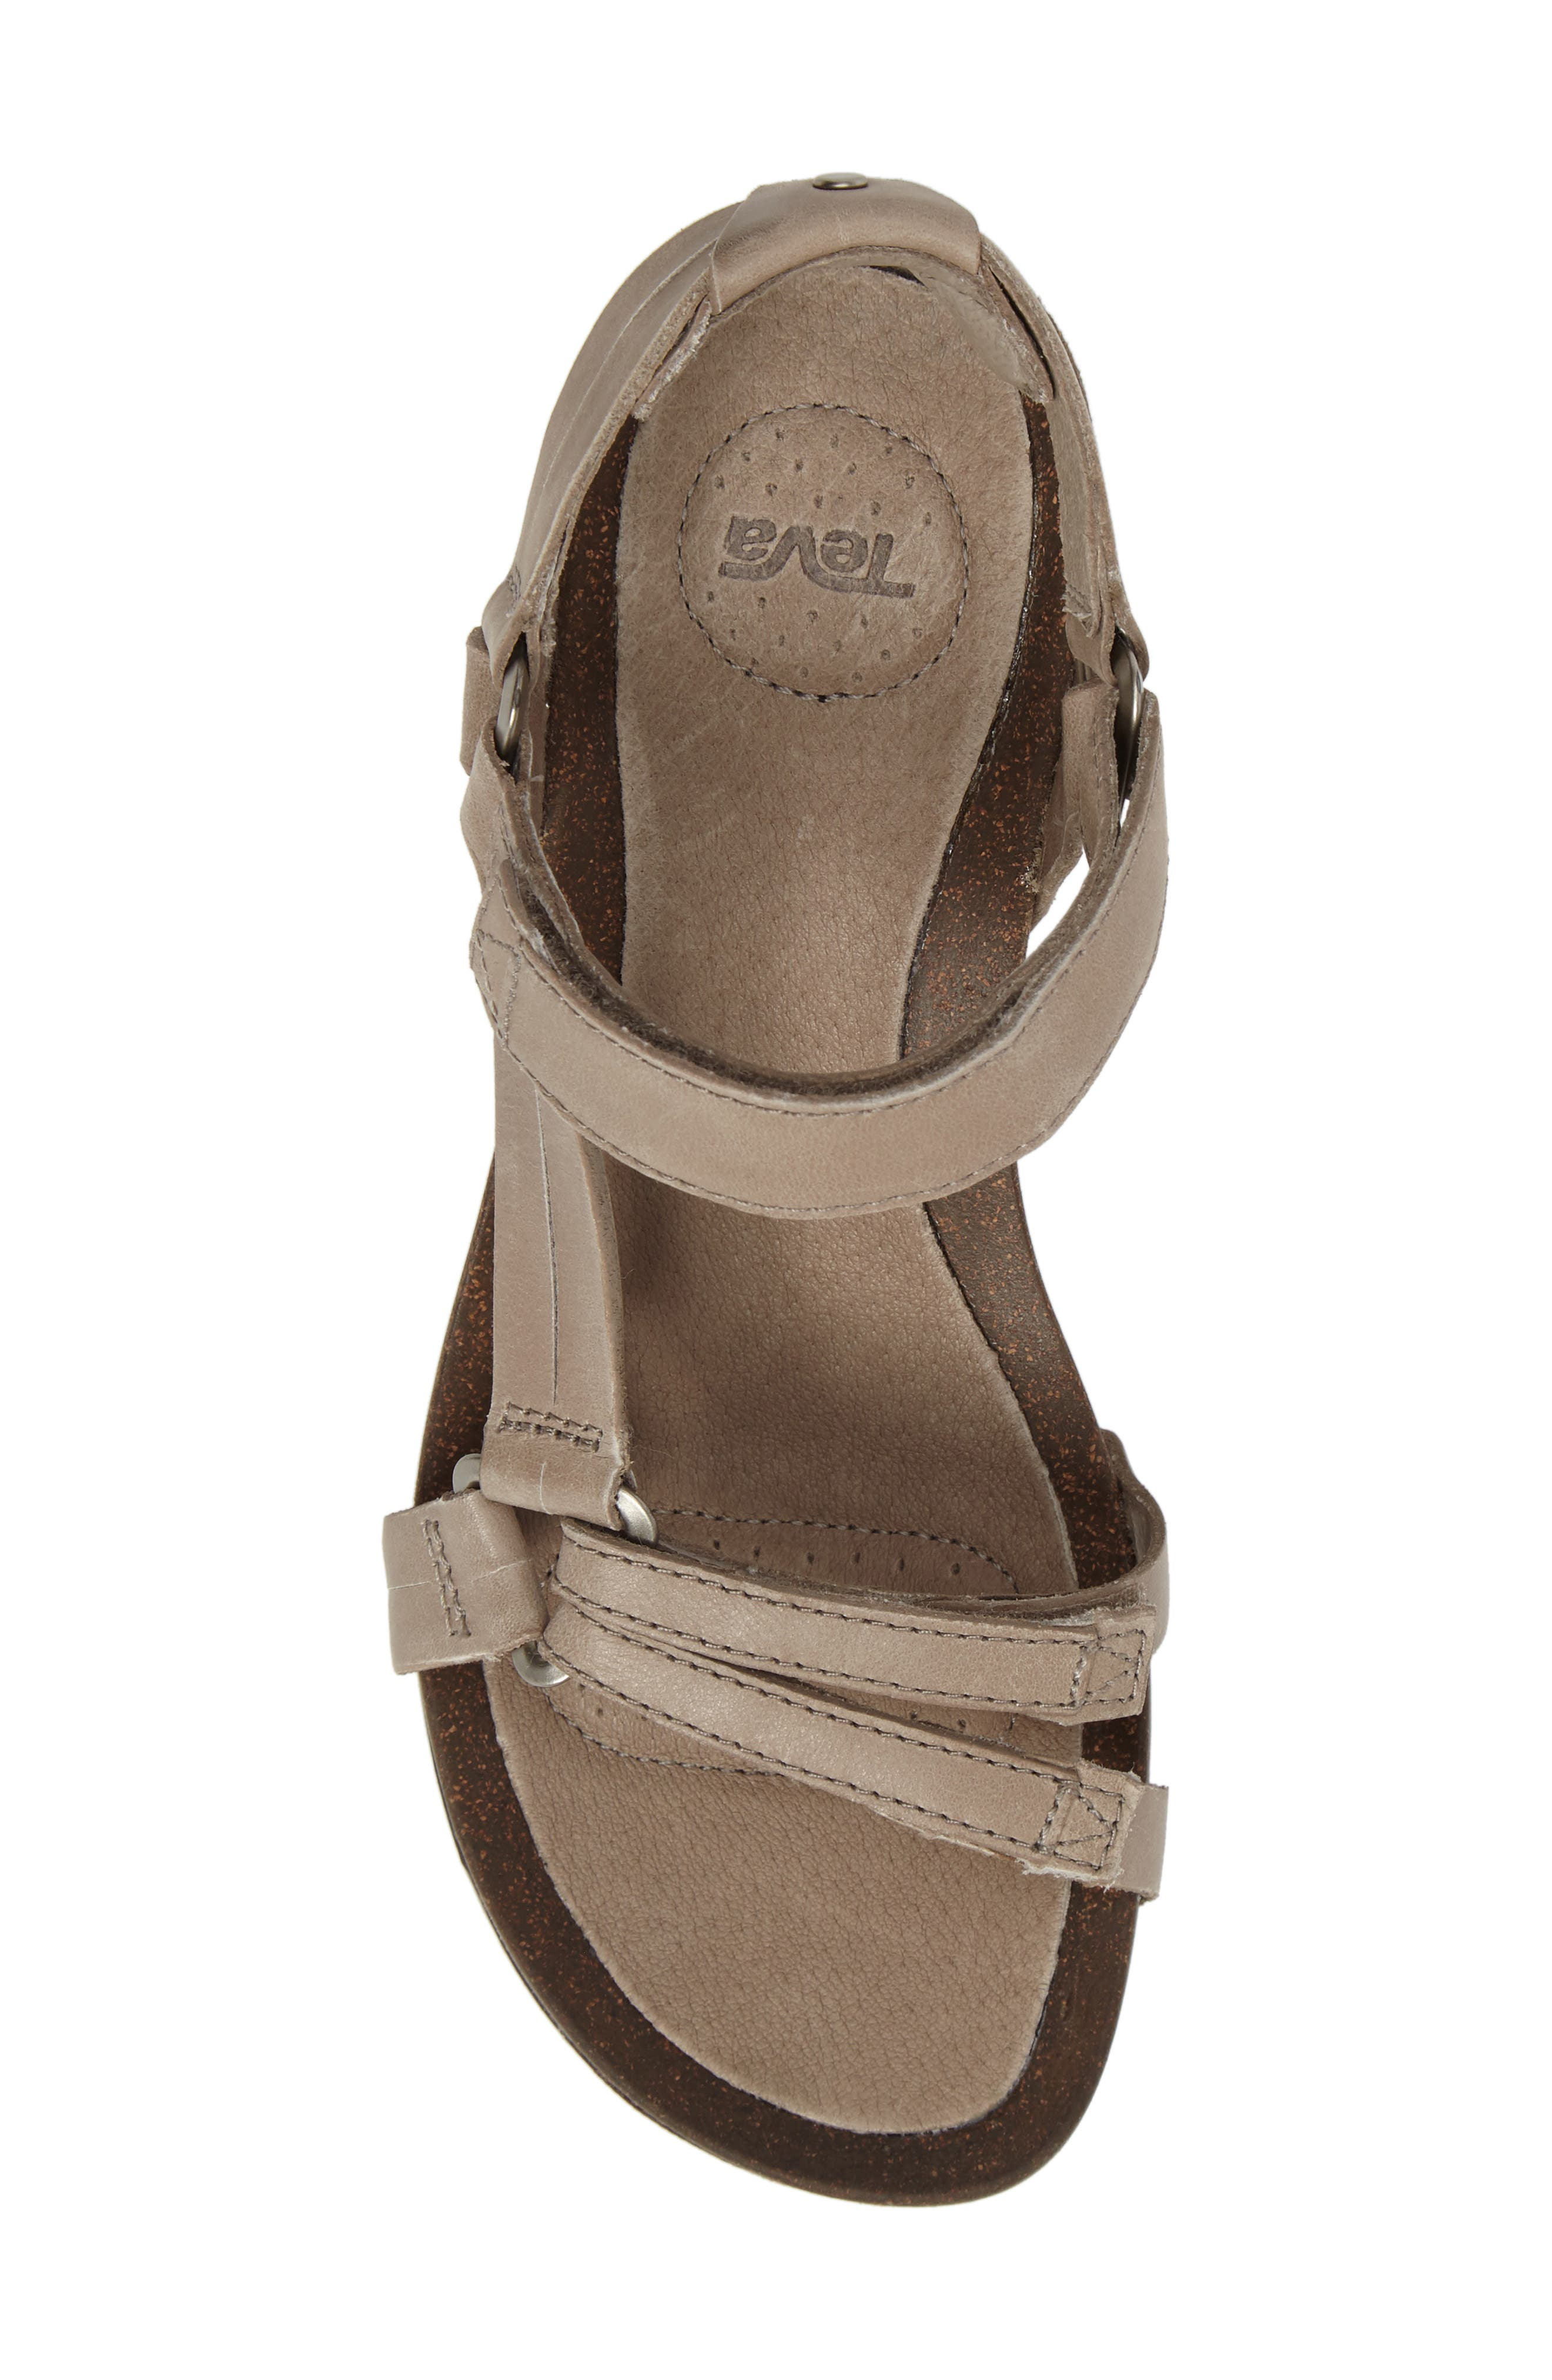 Ysidro Wedge Sandal,                             Alternate thumbnail 5, color,                             Taupe Leather